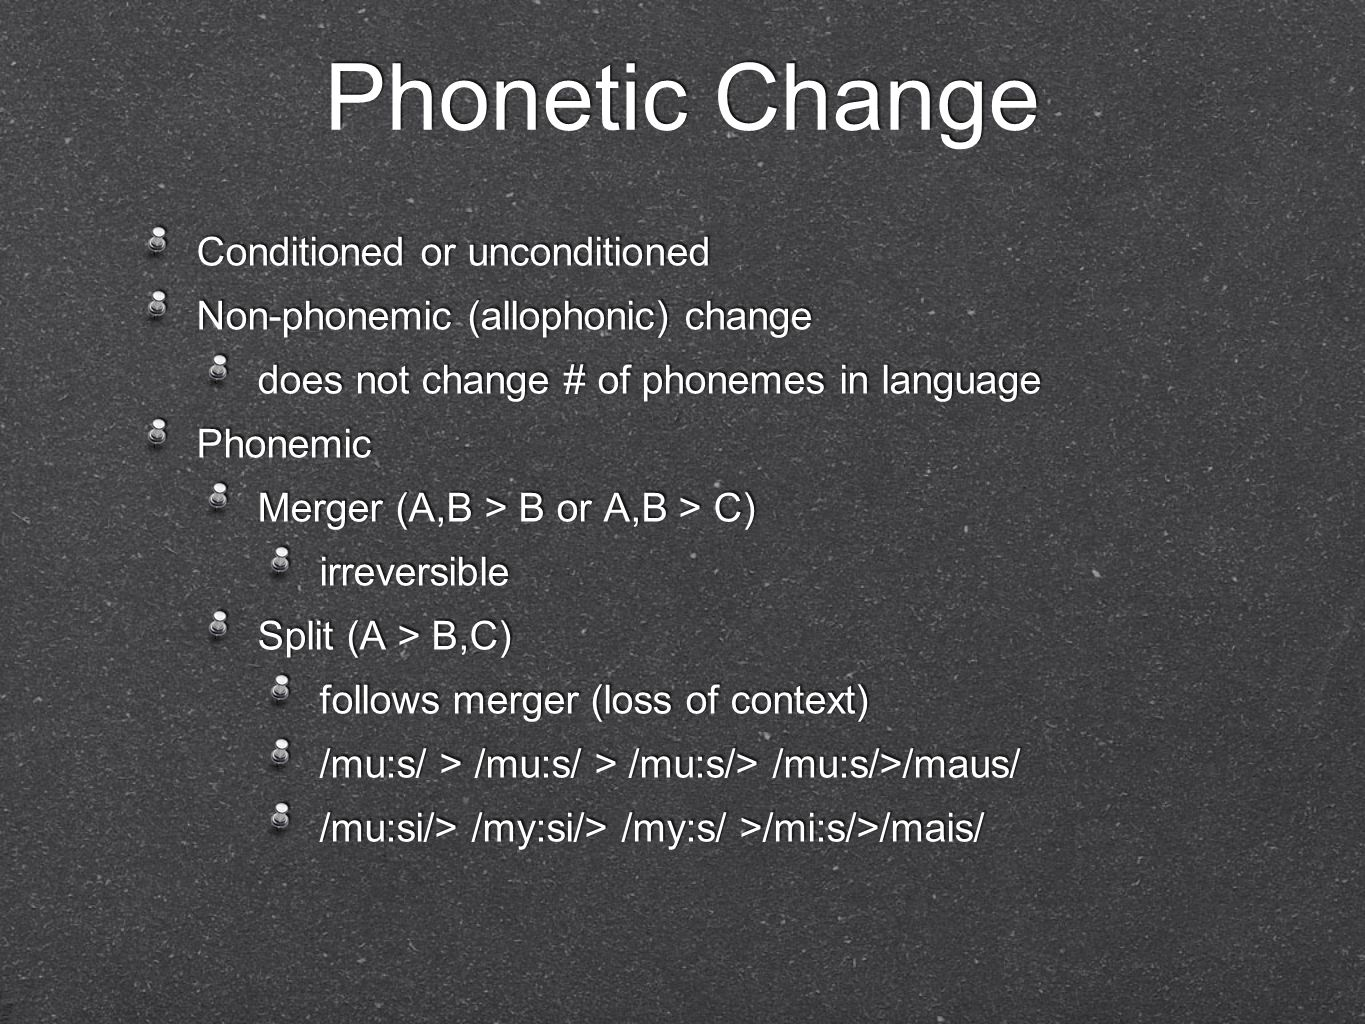 Phonetic Change Conditioned or unconditioned Non-phonemic (allophonic) change does not change # of phonemes in language Phonemic Merger (A,B > B or A,